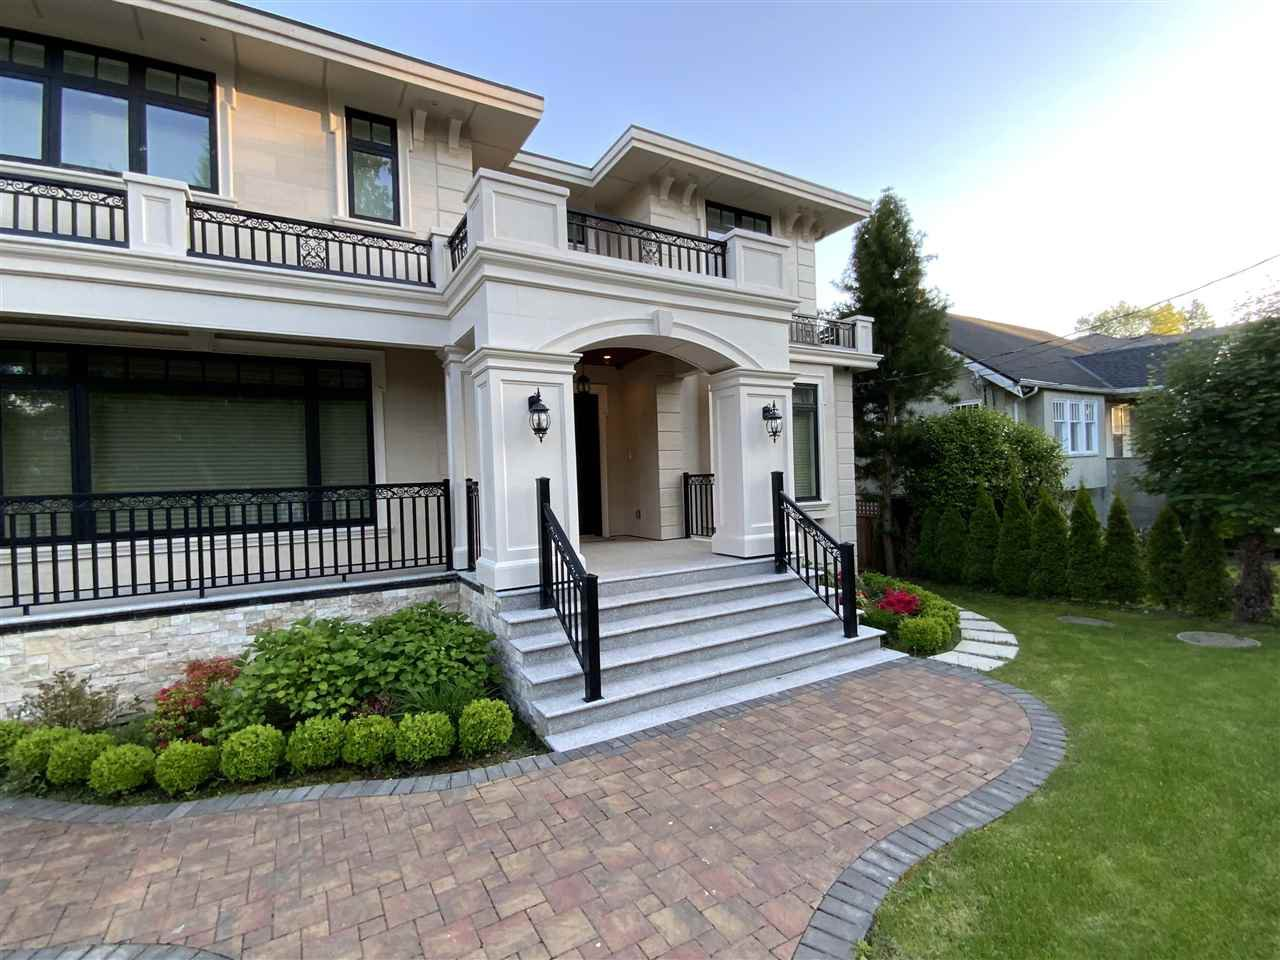 Main Photo: 2708 W 34TH Avenue in Vancouver: MacKenzie Heights House for sale (Vancouver West)  : MLS®# R2457298